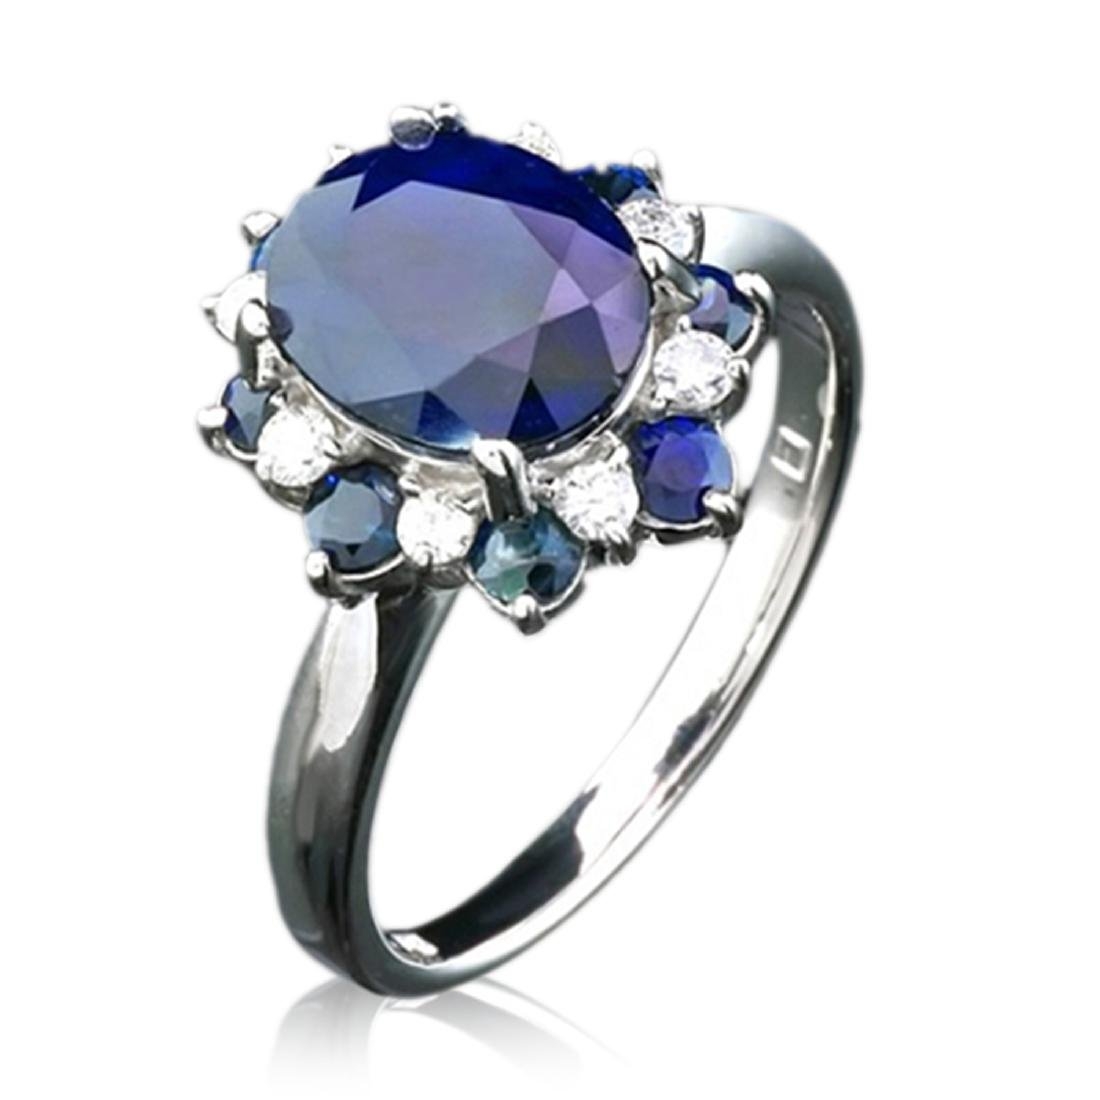 5.97 Carat Natural Sapphire 18K Solid White Gold